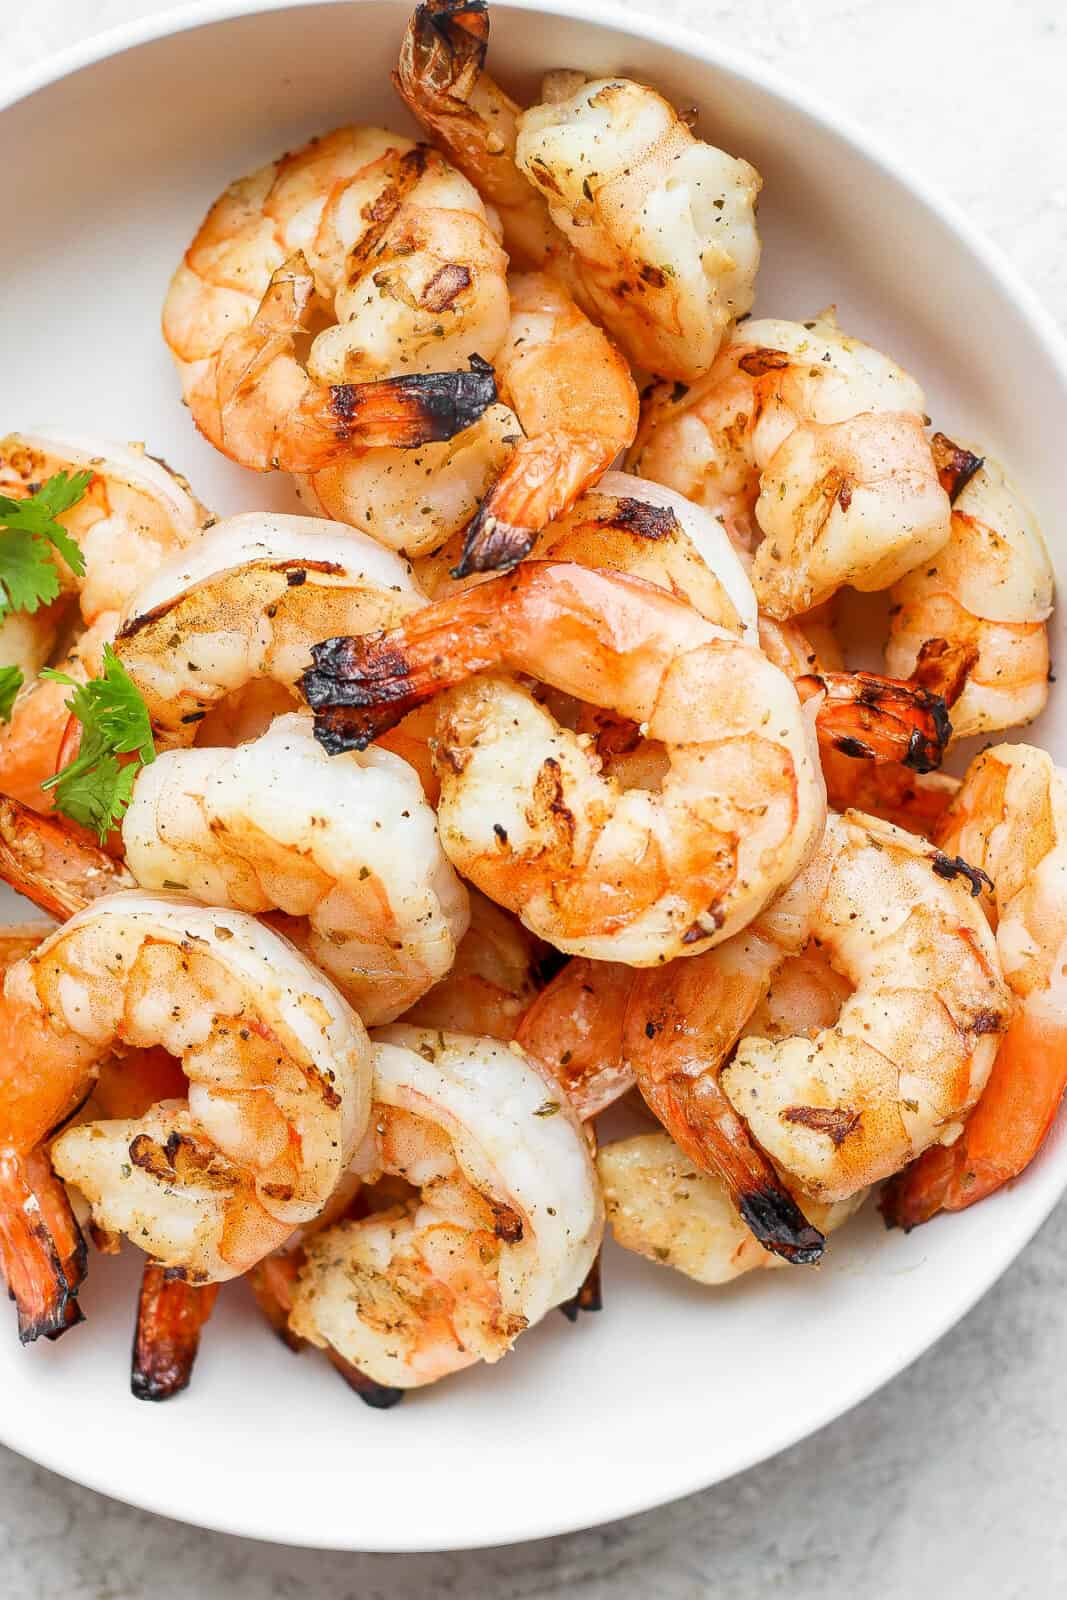 Marinated shrimp that have been grilled in a bowl.